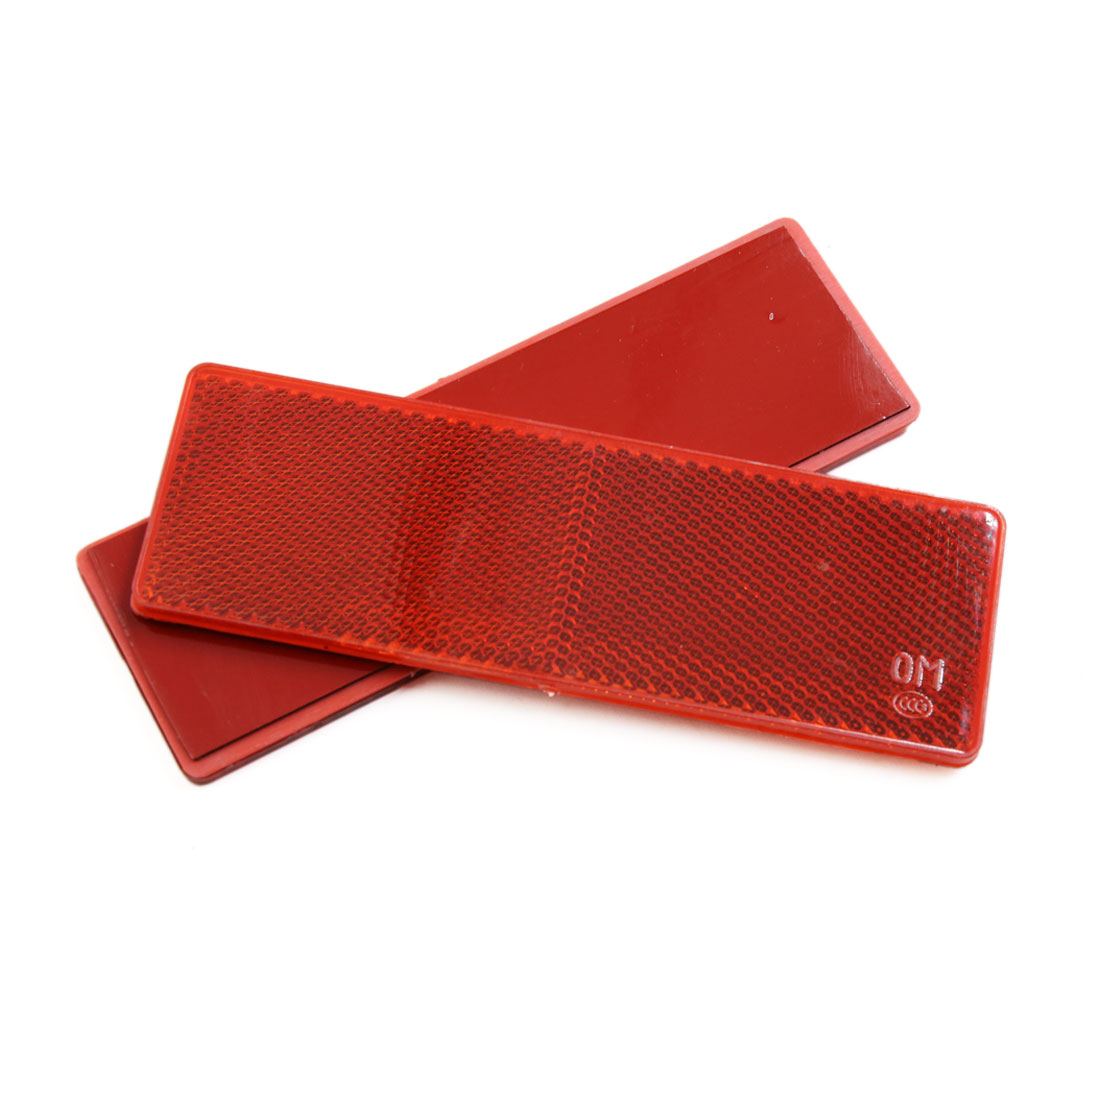 30Pcs Red Plastic Car Vehicle Rectangle Reflector Warning Plate Stickers - image 2 de 3